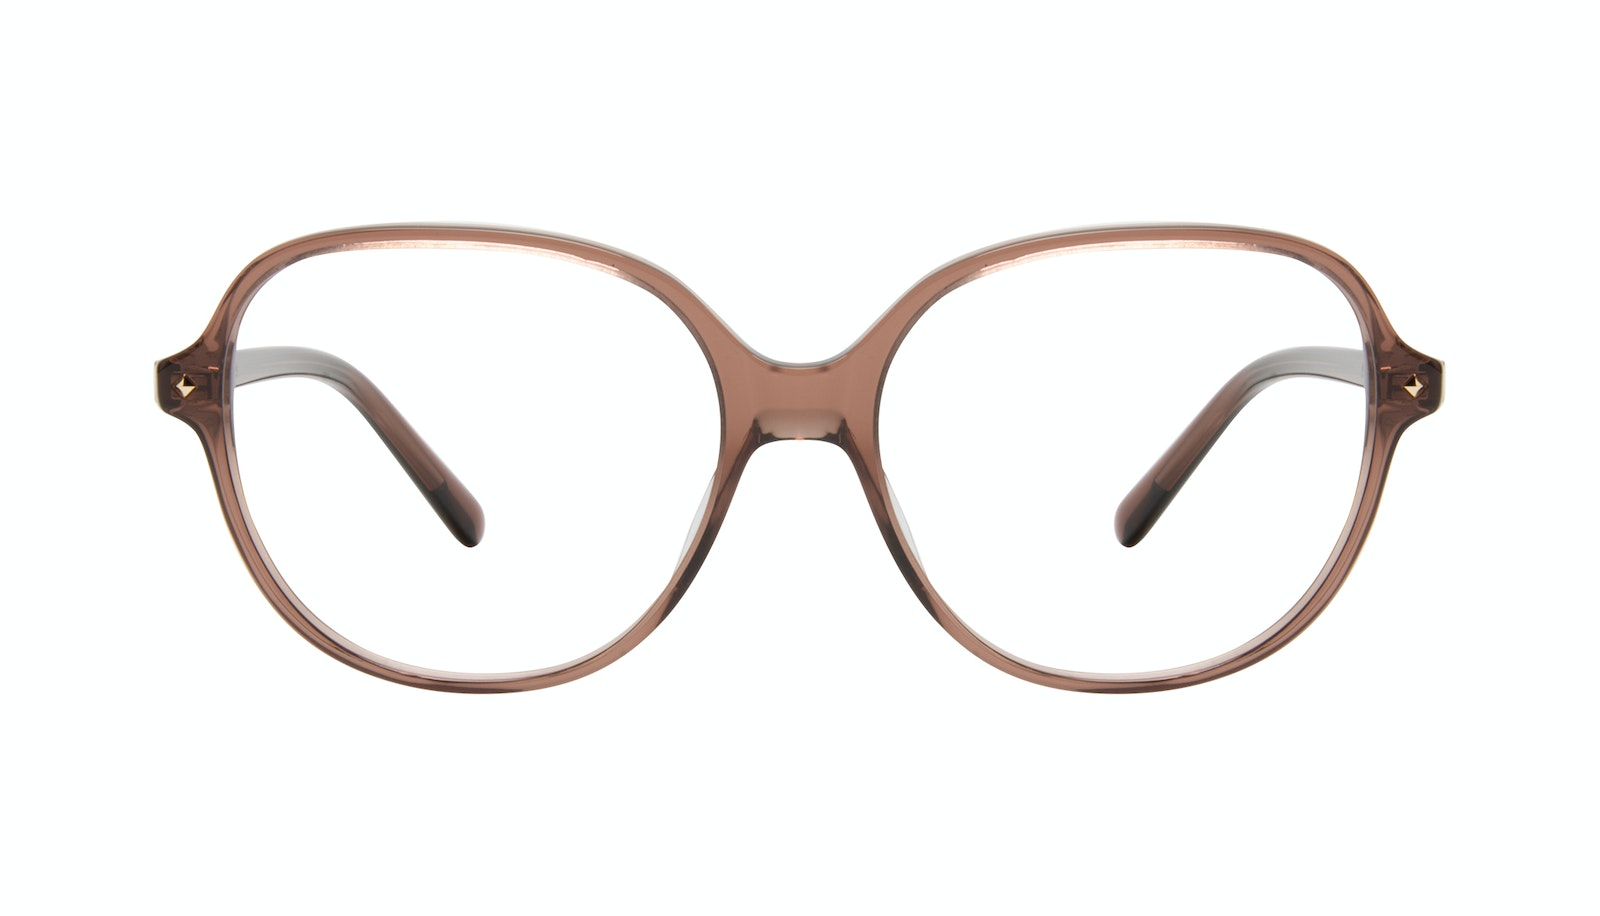 Affordable Fashion Glasses Round Eyeglasses Women Covet Terra